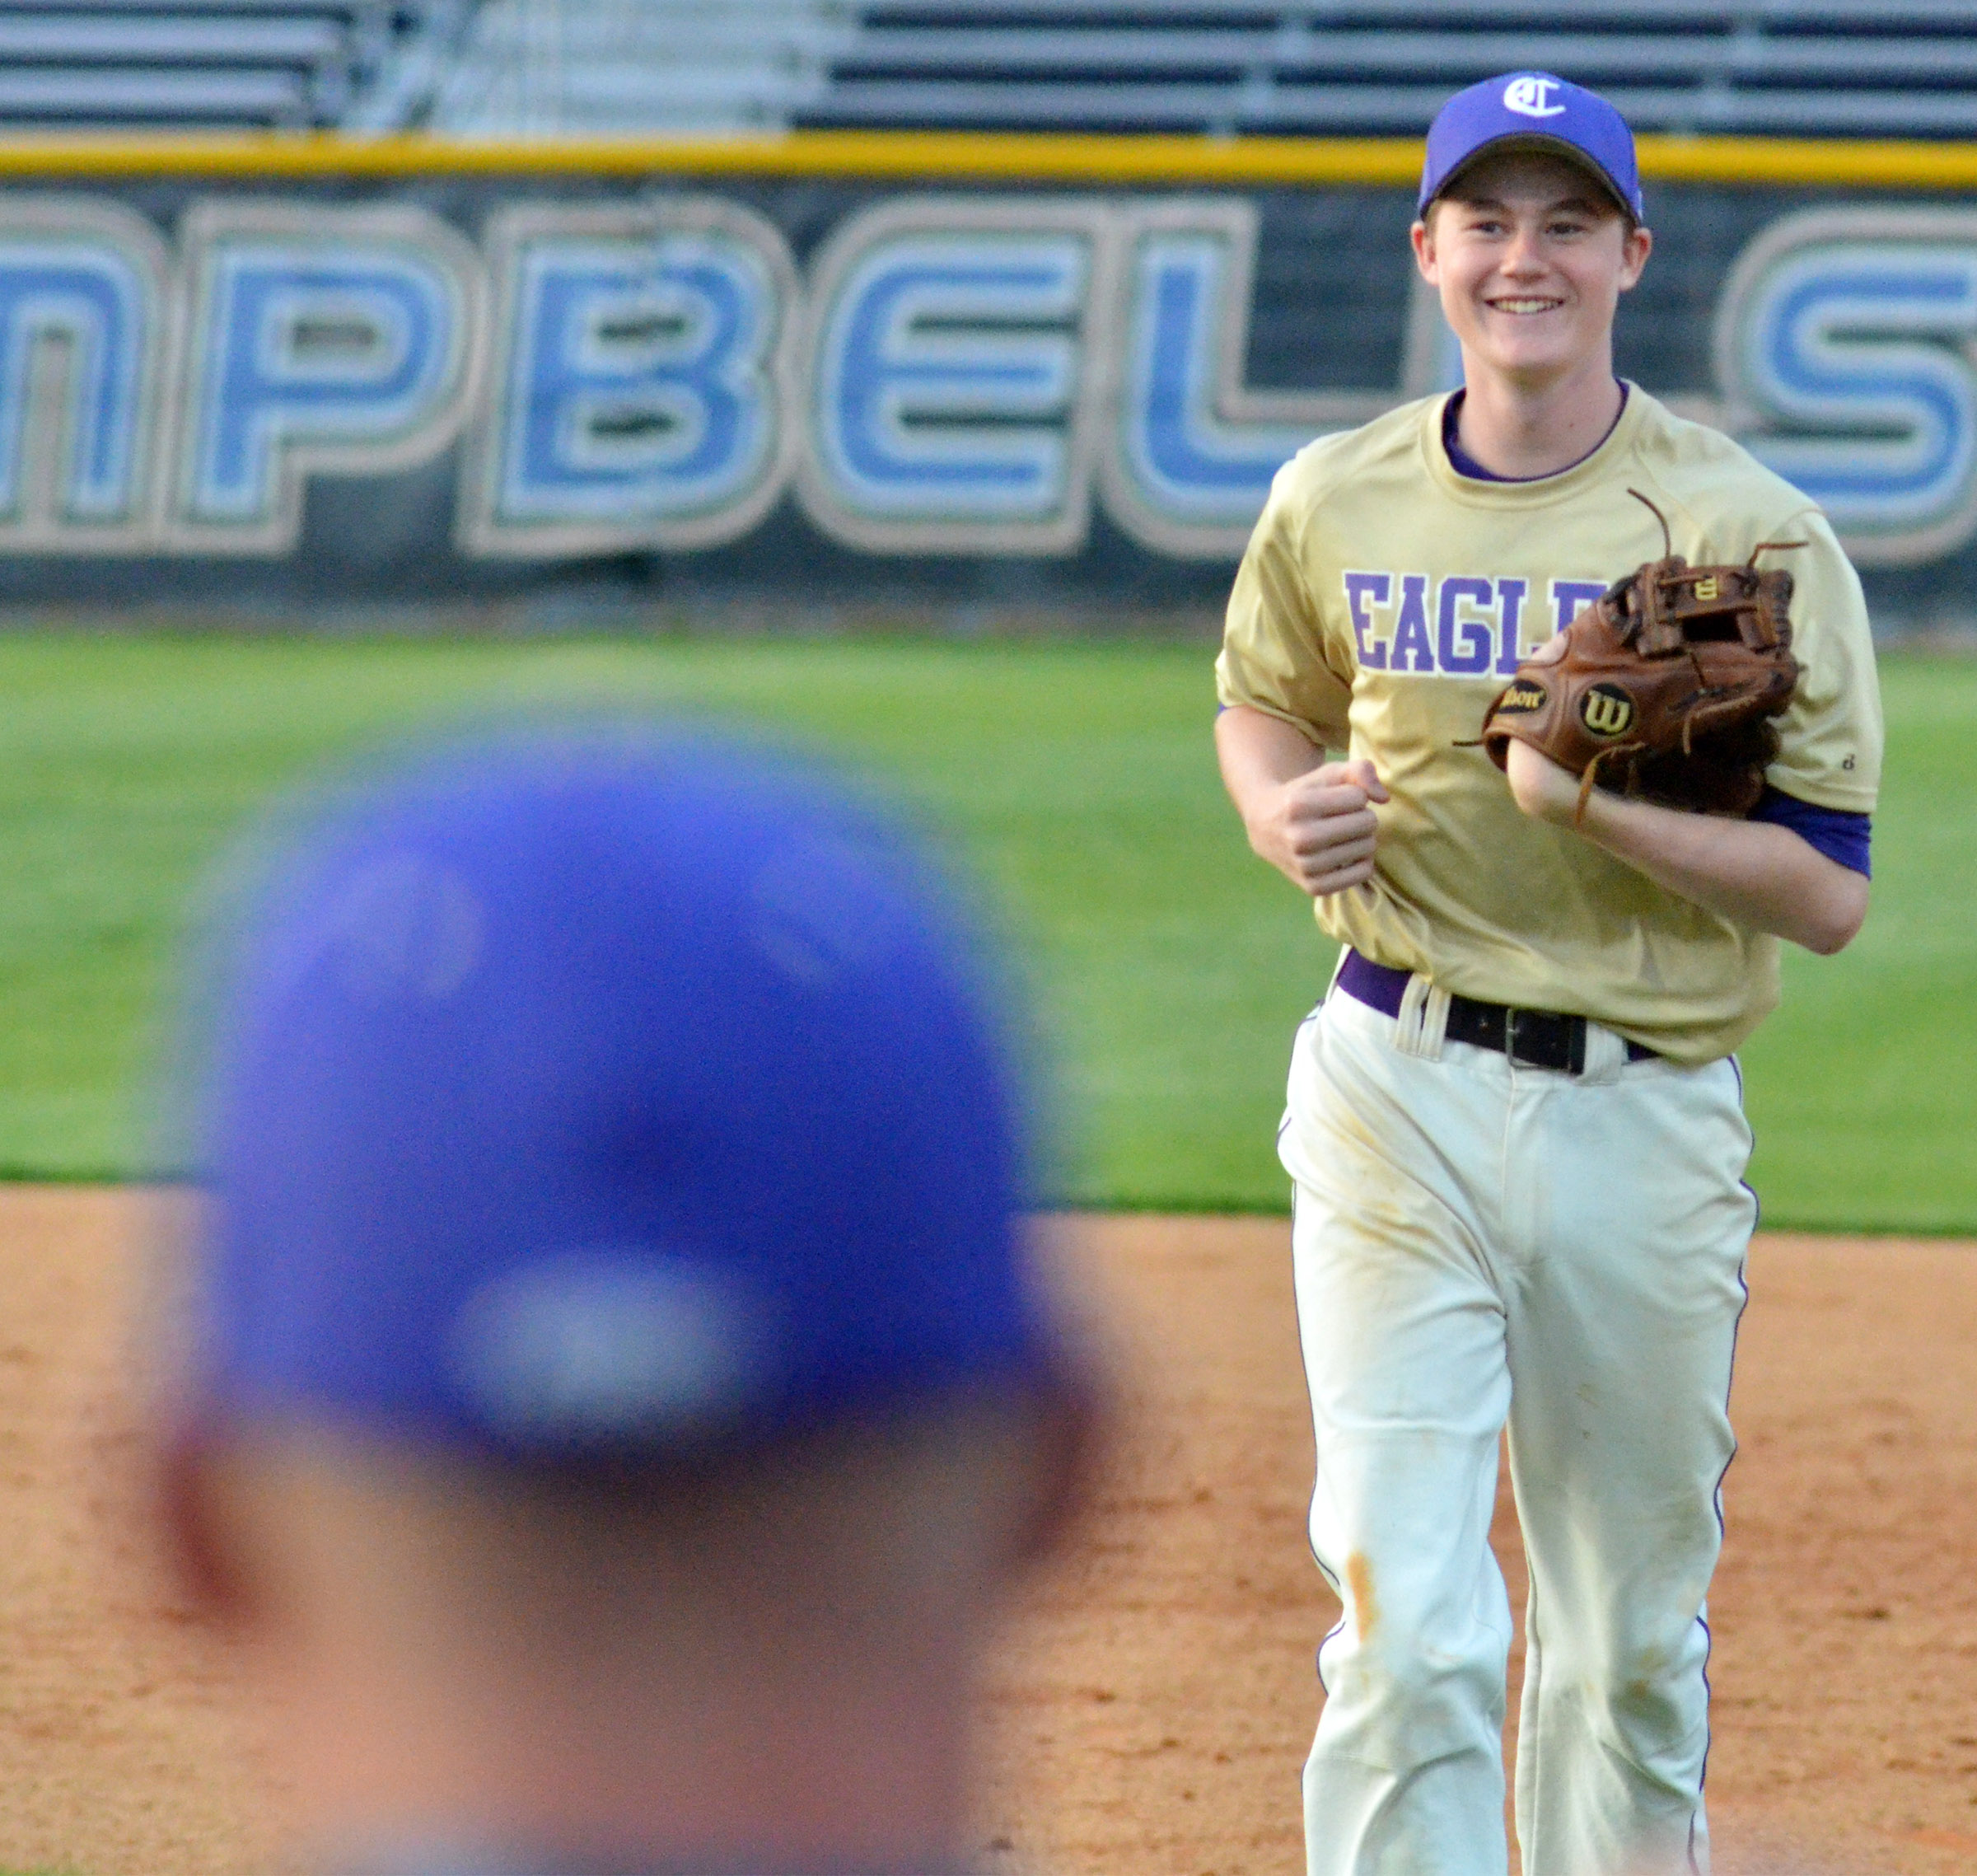 CMS eighth-grader Tristin Faulkner runs to the dugout after getting an out.